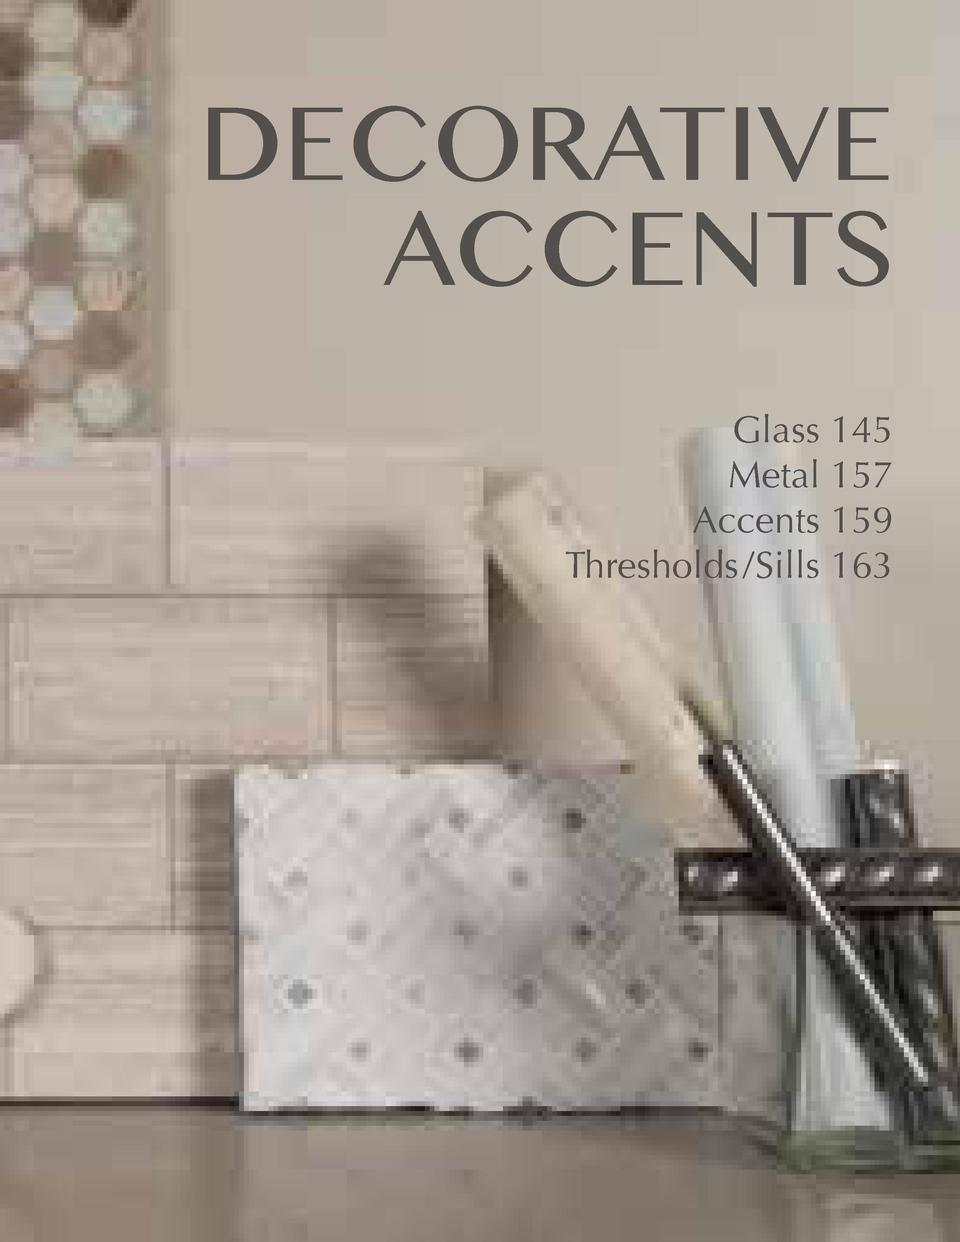 DECORATIVE ACCENTS Glass 145 Metal 157 Accents 159 Thresholds  Sills 163